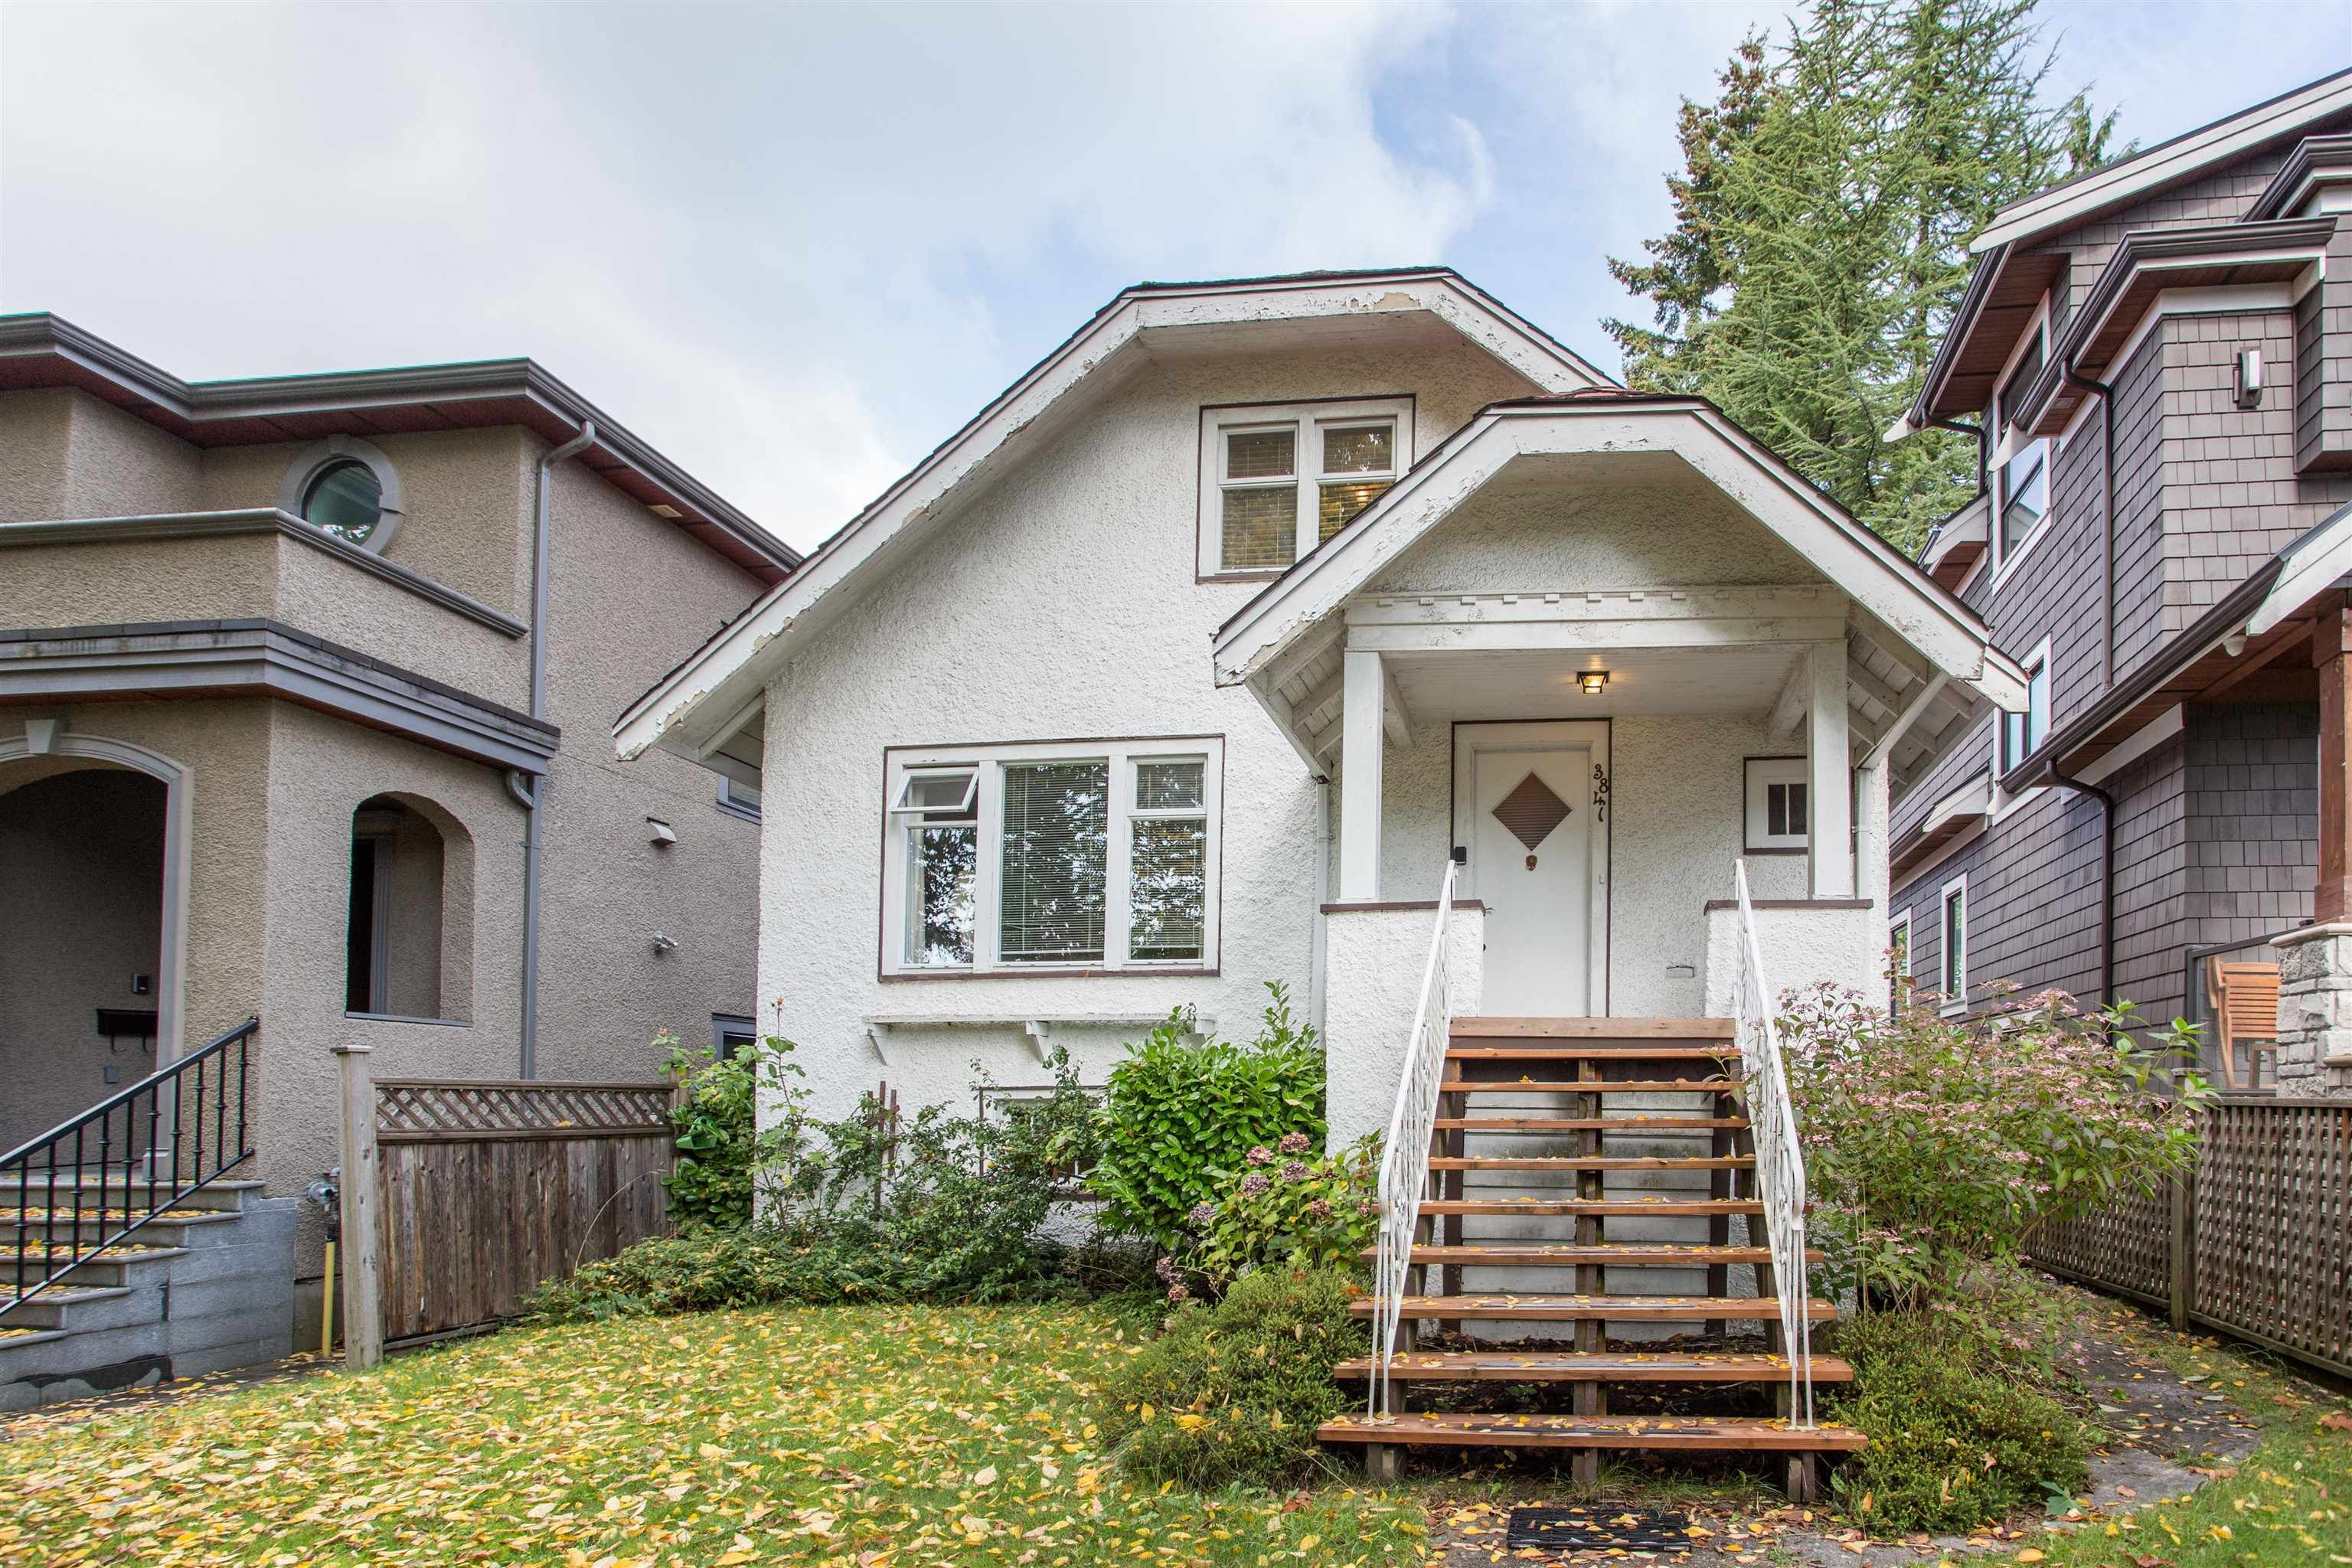 Main Photo: 3841 W 24TH Avenue in Vancouver: Dunbar House for sale (Vancouver West)  : MLS®# R2623159